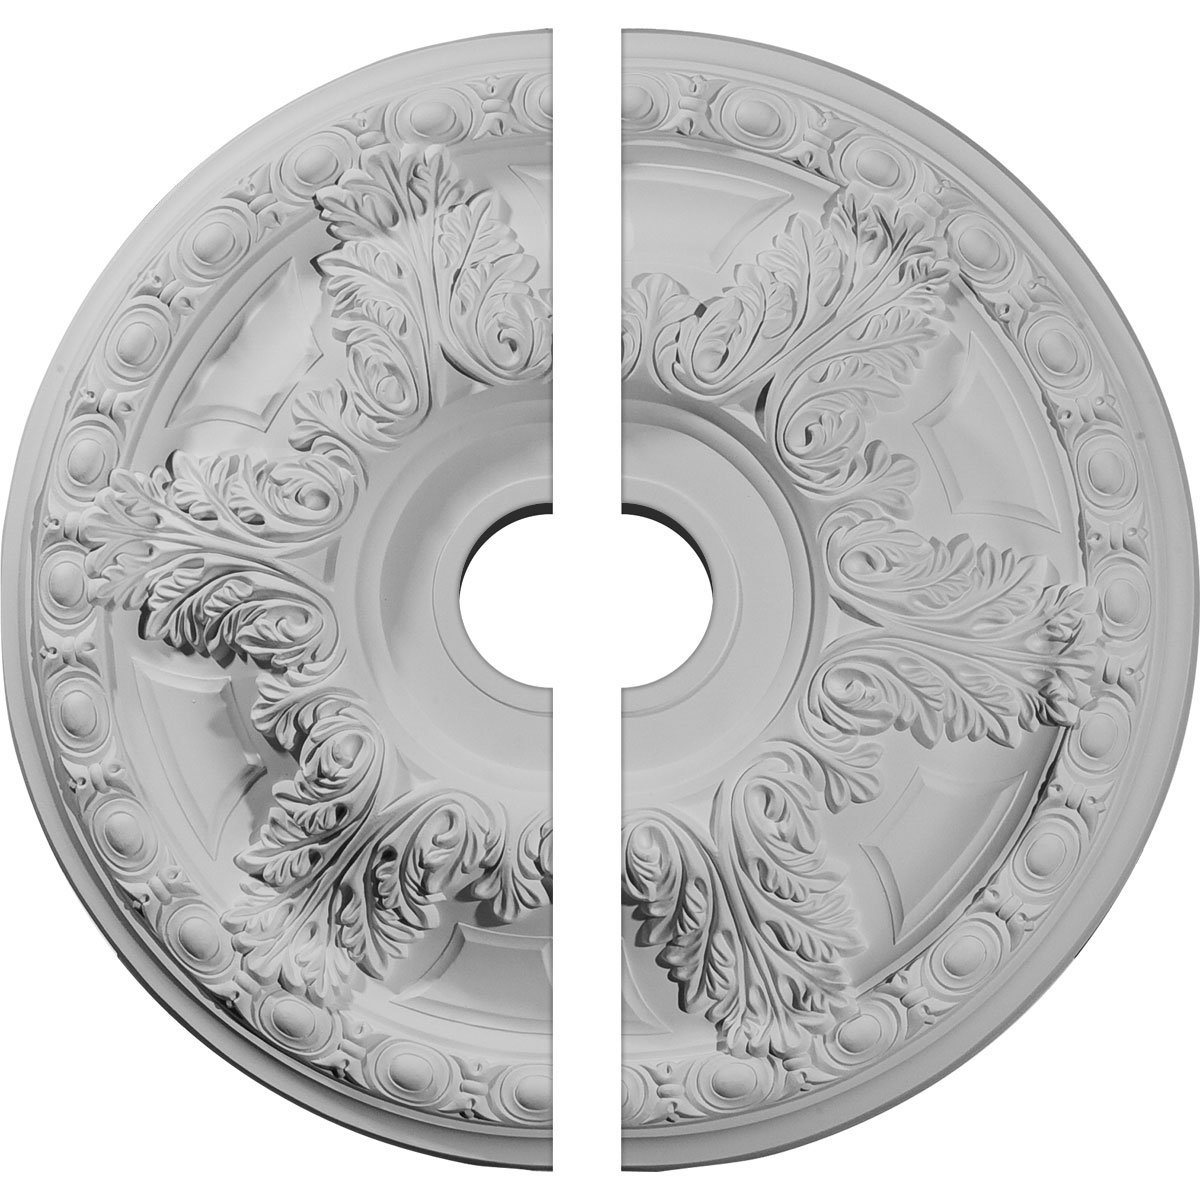 Two Piece Ekena Millwork CM23GA2 23 3//8OD x 3 5//8ID x 2 1//2P Granada Ceiling Medallion Factory Primed White Factory Primed White Two Piece Fits Canopies up to 7 1//8 Fits Canopies up to 7 1//8